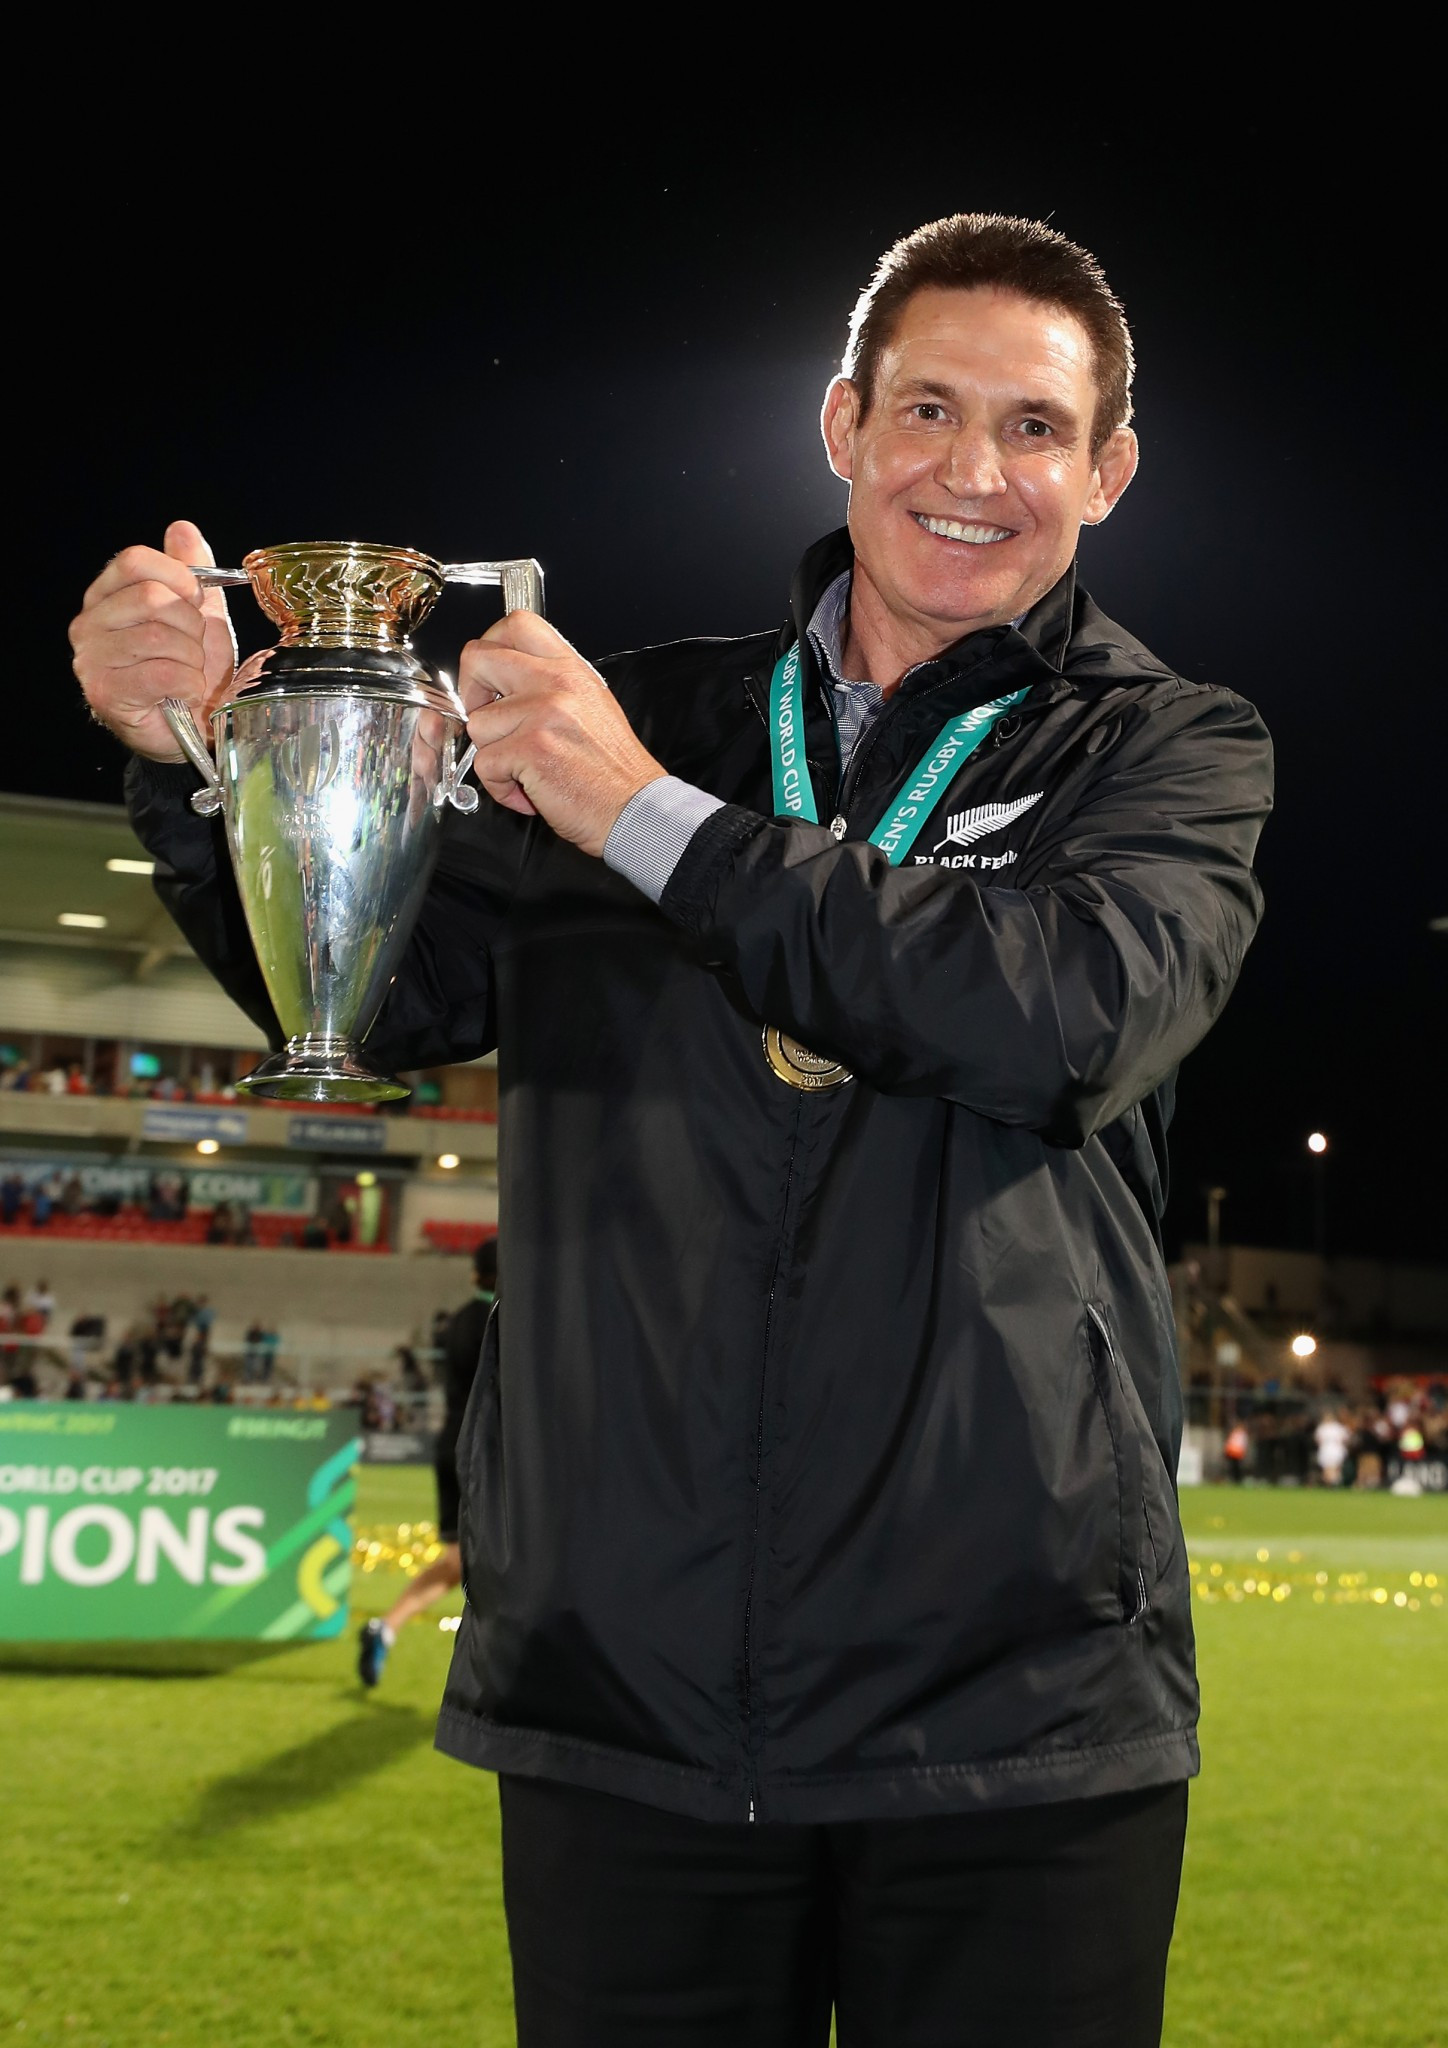 Mixed message? Glenn Moore, head coach of New Zealand's Black Ferns, displays the Women's Rugby World Cup they regained against England in Belfast after recovering from 17-10 down at half-time ©Getty Images